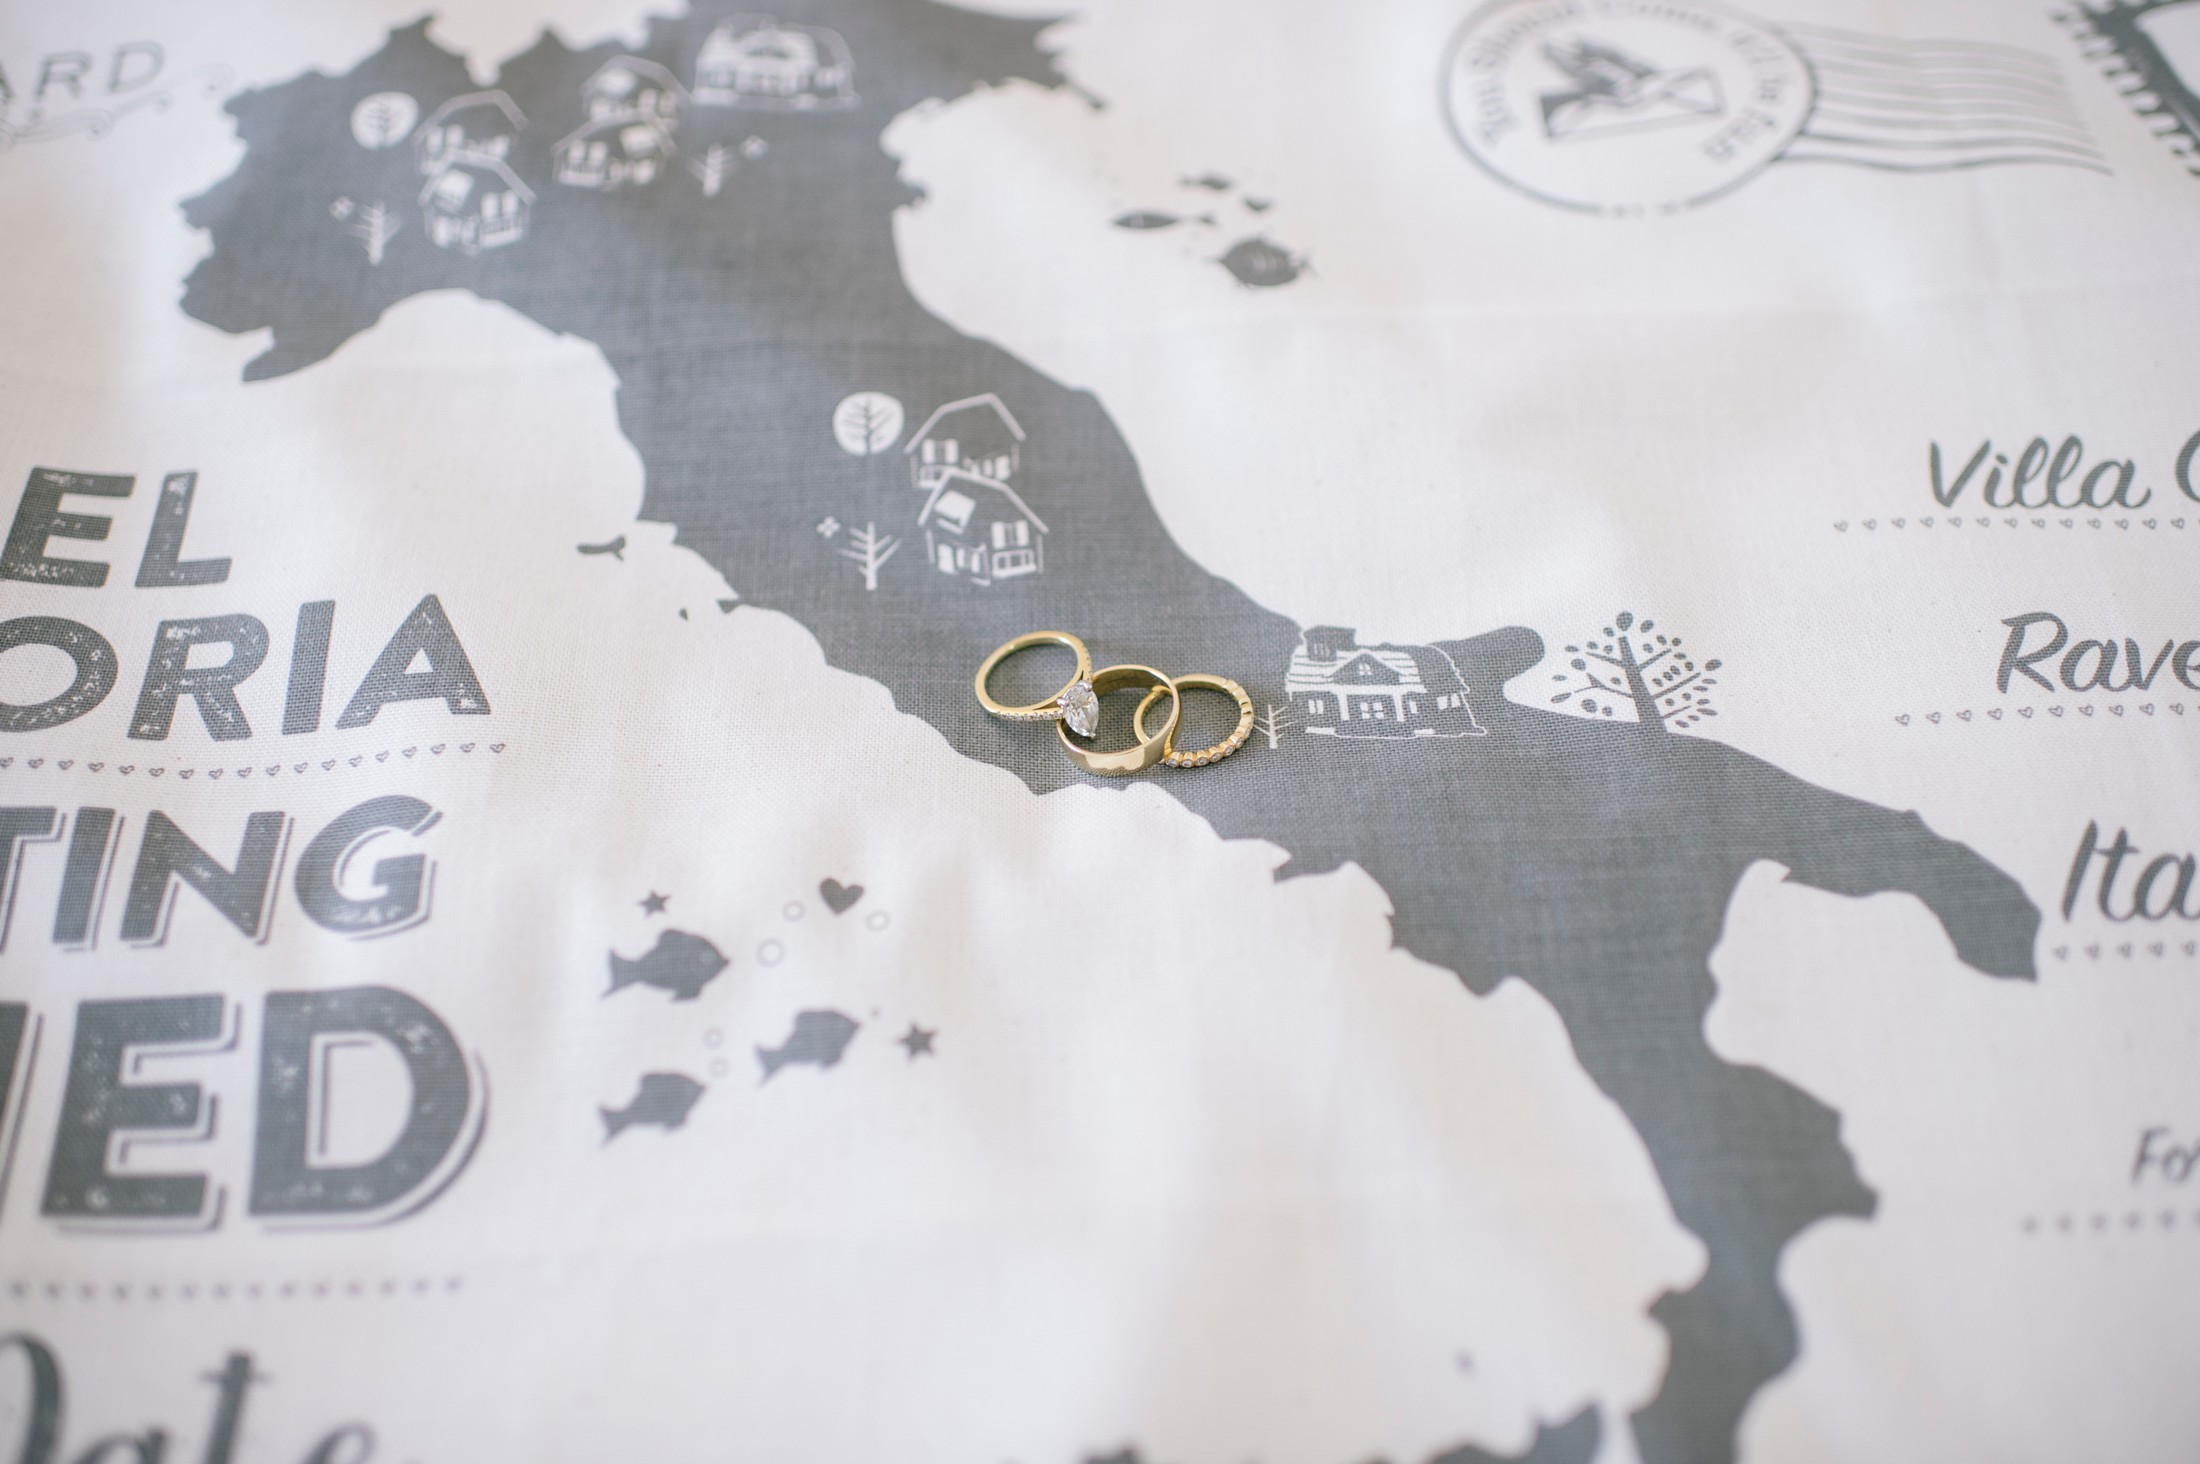 wedding rings on a black and white map of Italy